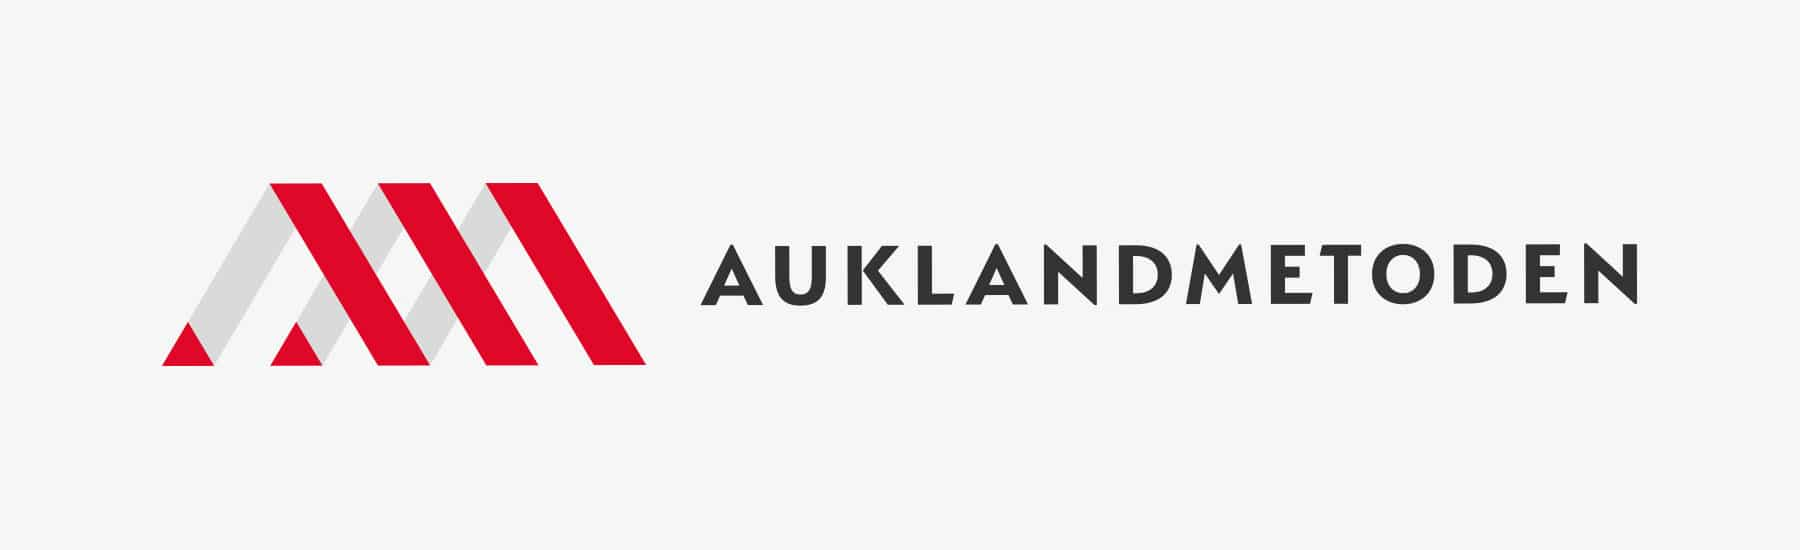 Auklandmetoden / Logo